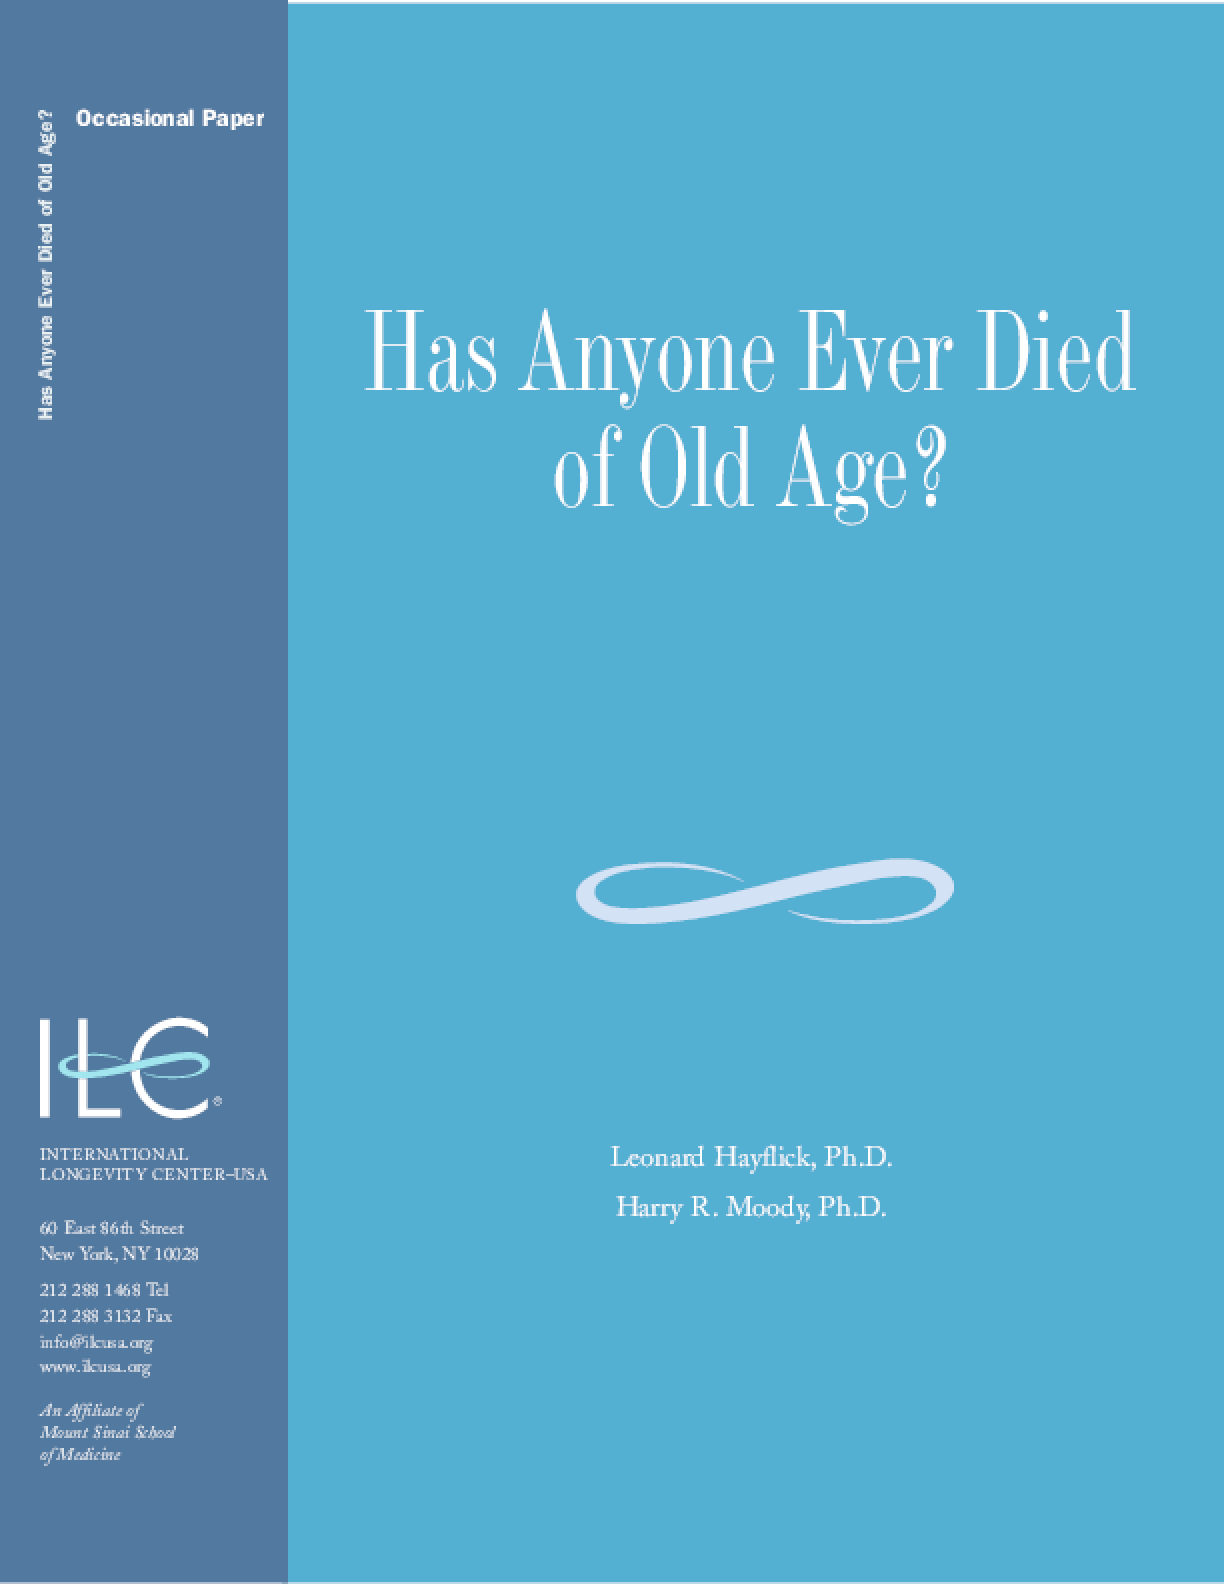 Has Anyone Ever Died of Old Age?